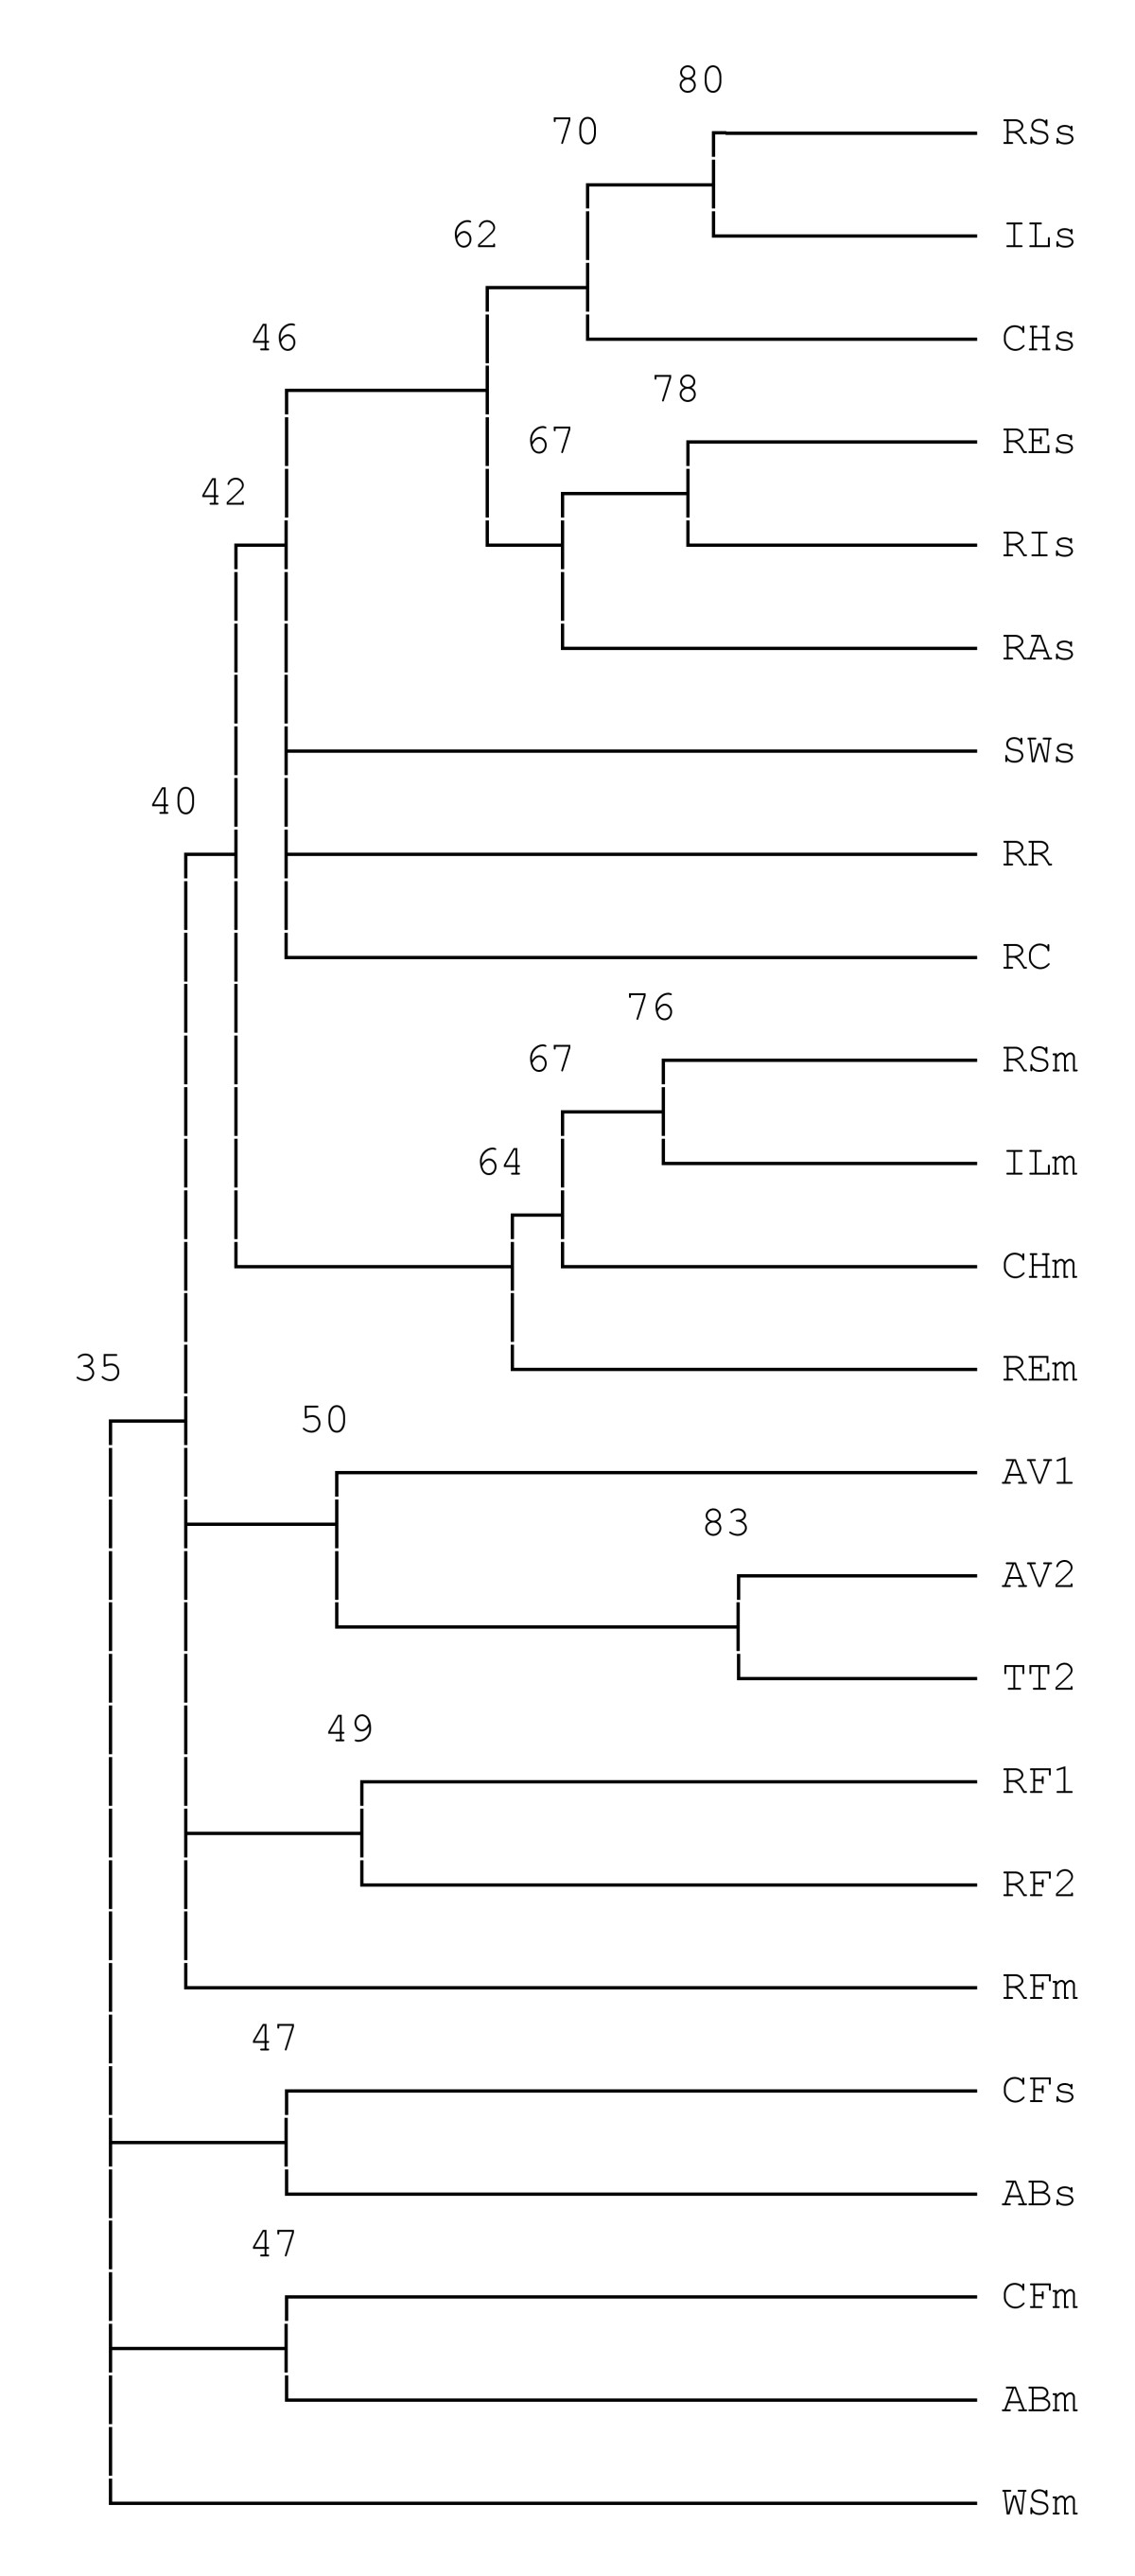 http://static-content.springer.com/image/art%3A10.1186%2F1471-2091-11-24/MediaObjects/12858_2009_Article_285_Fig4_HTML.jpg